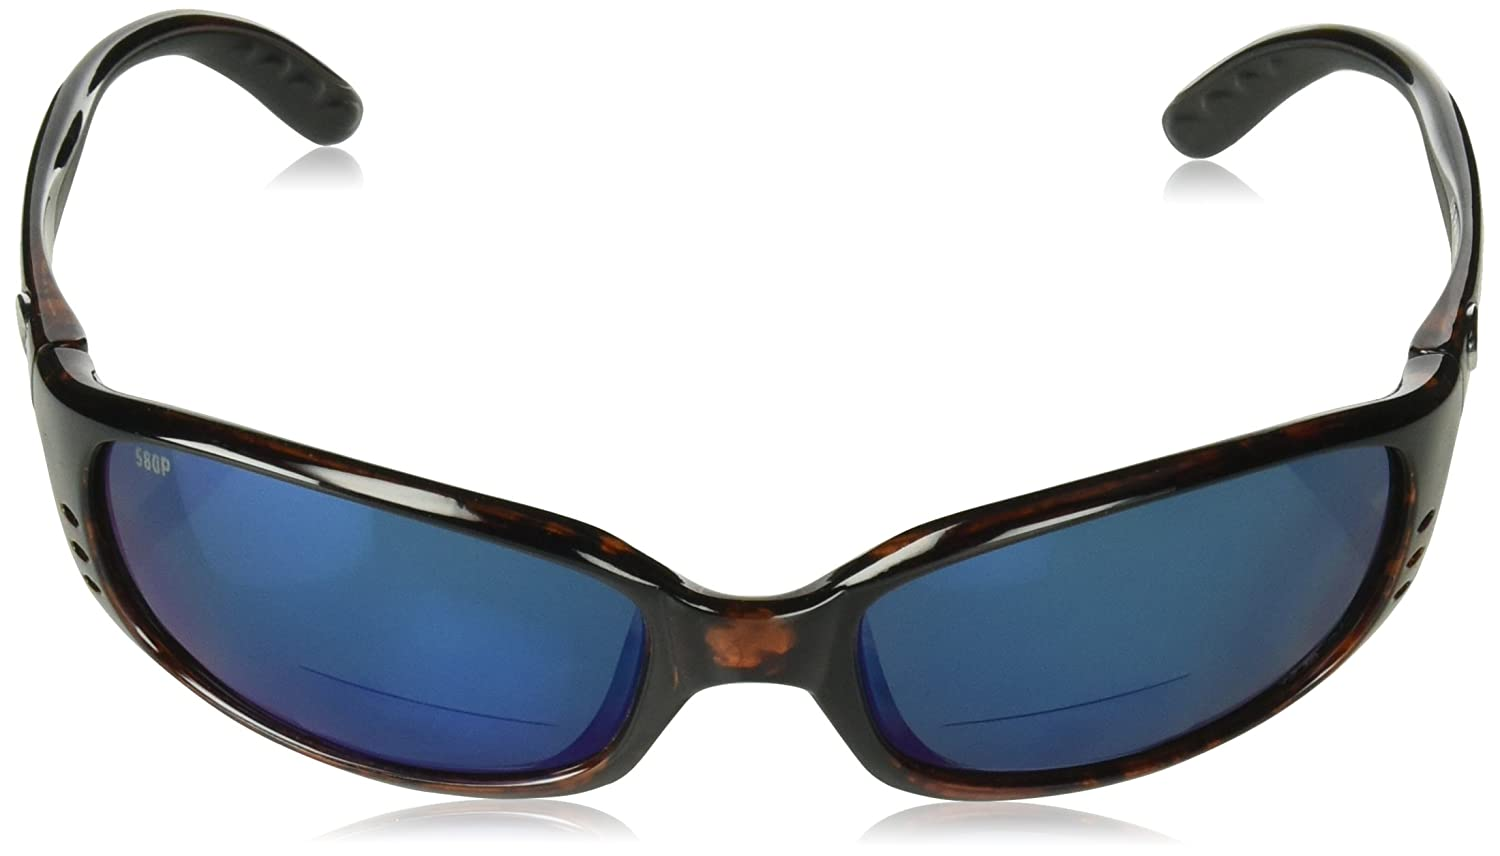 Direct BR10OBMP2.50 Costa Del Mar Brine C-Mate 2.50 Sunglasses Tortoise Blue Mirror 580P Lens Pro-Motion Distributing